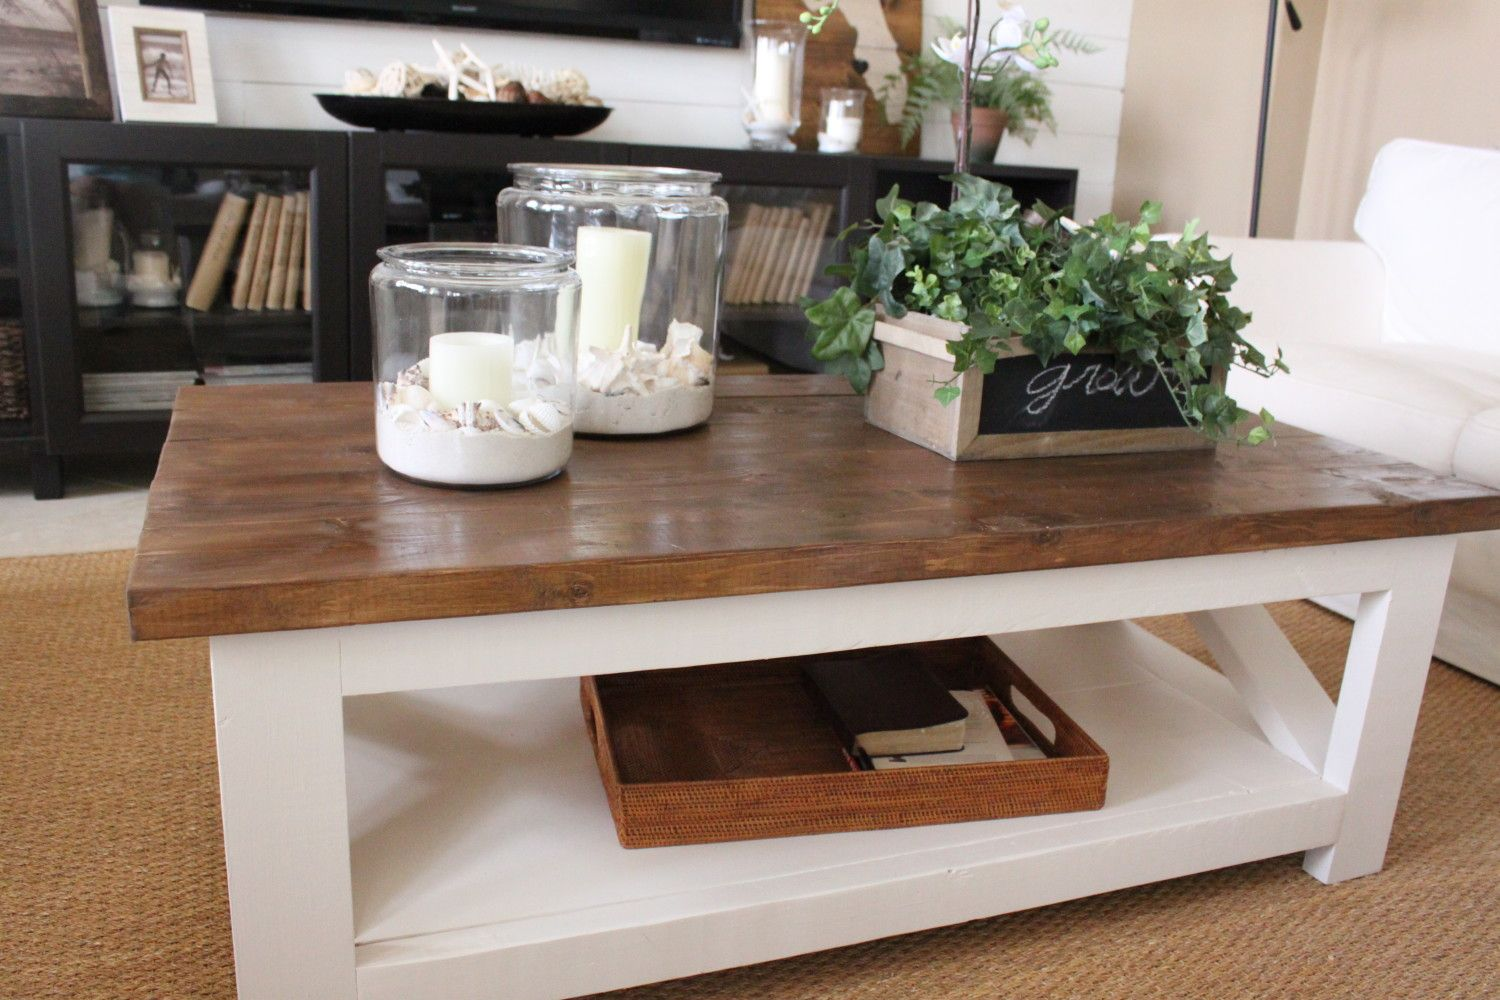 A New Rustic Coastal Coffee Table Decorating Coffee Tables Decor Table